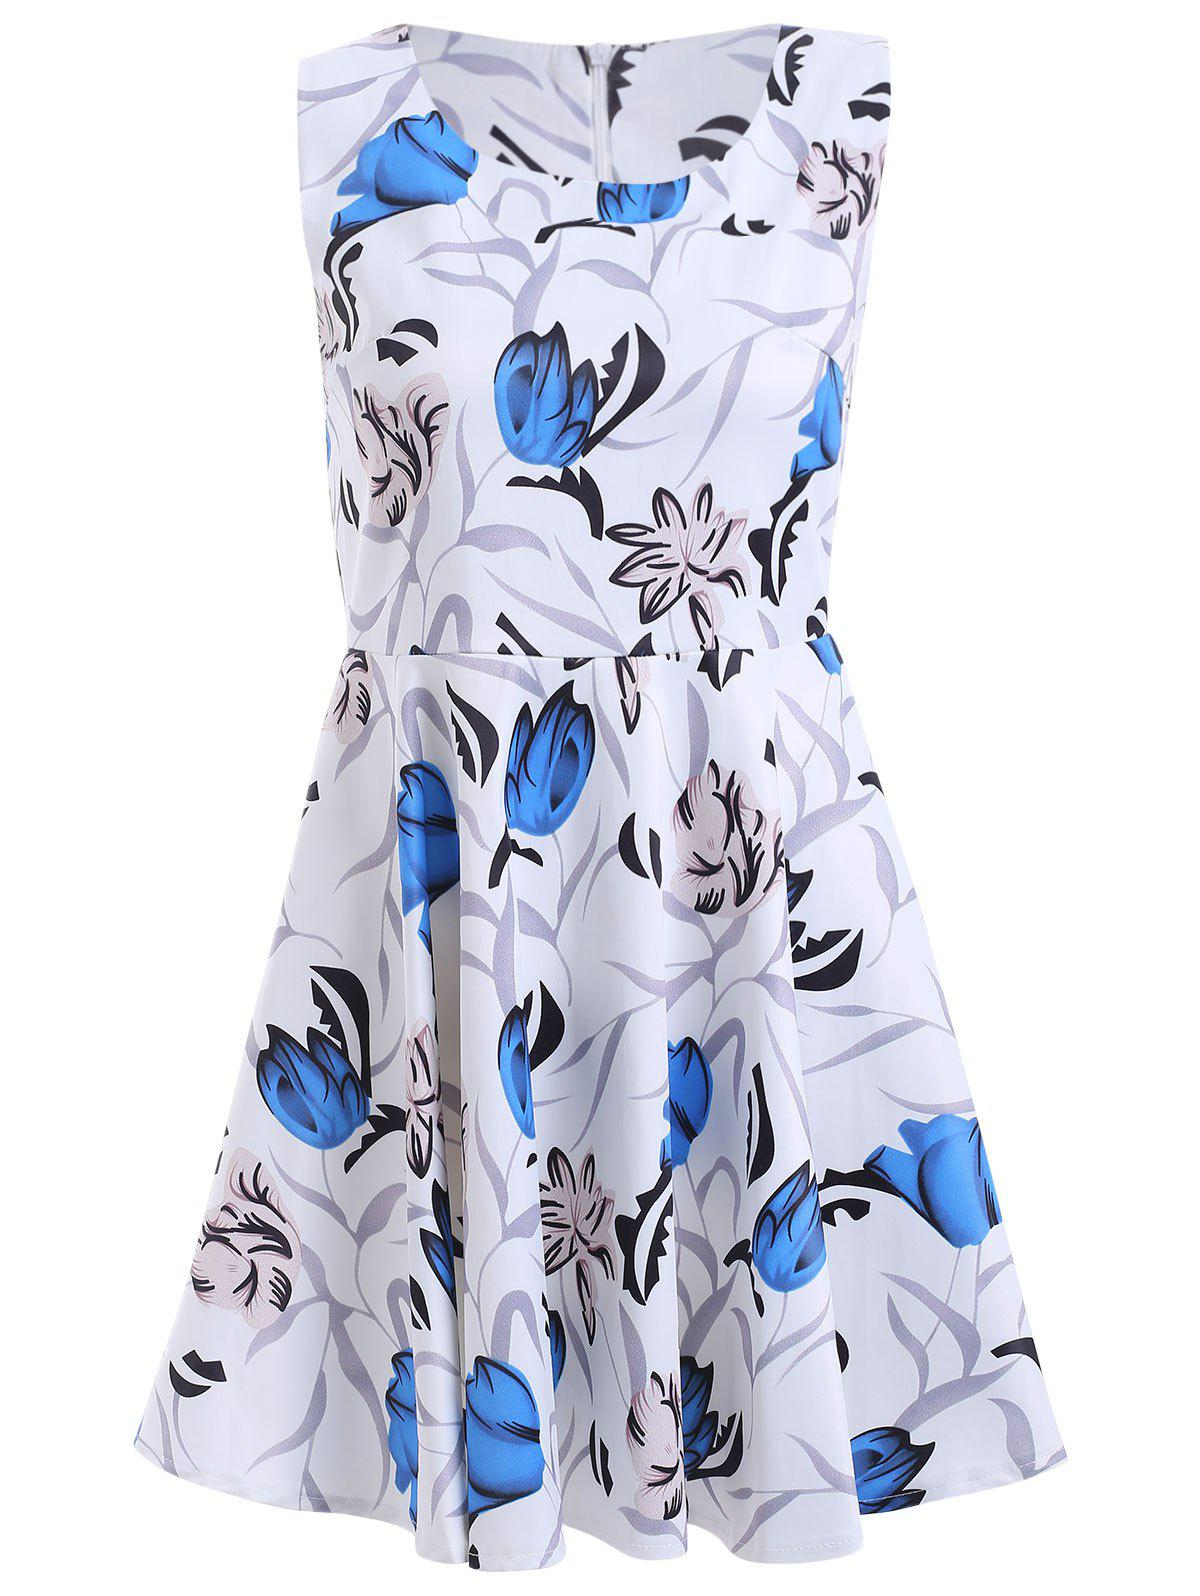 Sweet High Waist Floral Print Dress